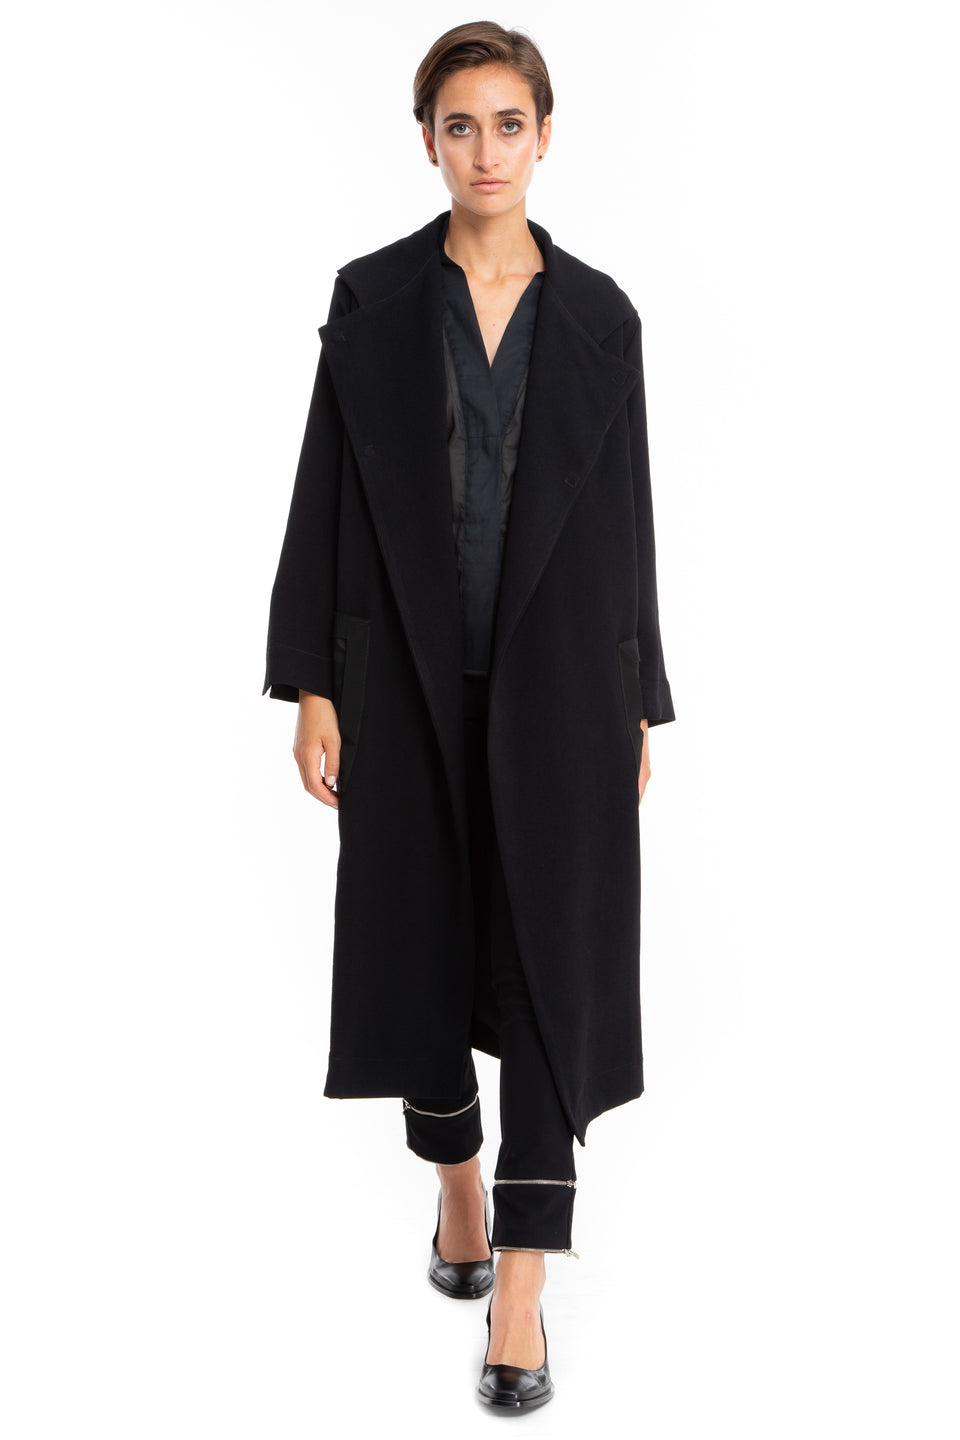 NINObrand Black Jacket/Duster with sheer pockets and magnetic closure